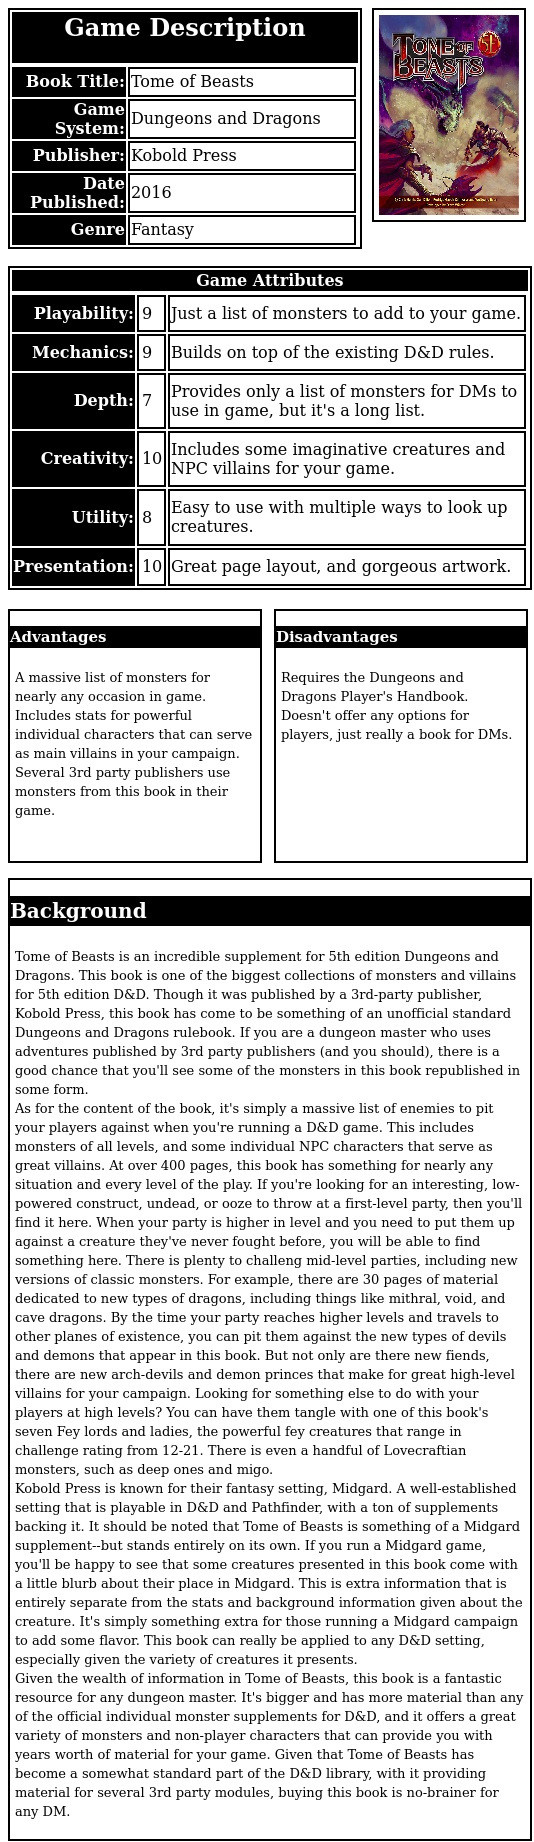 Tome of Beasts is an incredible supplement for 5th edition Dungeons and Dragons. This book is one of the biggest collections of monsters and villains for 5th edition D&D. Though it was published by a 3rd-party publisher, Kobold Press, this book has come to be something of an unofficial standard Dungeons and Dragons rulebook. If you are a dungeon master who uses adventures published by 3rd party publishers (and you should), there is a good chance that you'll see some of the monsters in this book republished in some form.  As for the content of the book, it's simply a massive list of enemies to pit your players against when you're running a D&D game. This includes monsters of all levels, and some individual NPC characters that serve as great villains. At over 400 pages, this book has something for nearly any situation and every level of the play. If you're looking for an interesting, low-powered construct, undead, or ooze to throw at a first-level party, then you'll find it here. When your party is higher in level and you need to put them up against a creature they've never fought before, you will be able to find something here. There is plenty to challeng mid-level parties, including new versions of classic monsters. For example, there are 30 pages of material dedicated to new types of dragons, including things like mithral, void, and cave dragons. By the time your party reaches higher levels and travels to other planes of existence, you can pit them against the new types of devils and demons that appear in this book. But not only are there new fiends, there are new arch-devils and demon princes that make for great high-level villains for your campaign. Looking for something else to do with your players at high levels? You can have them tangle with one of this book's seven Fey lords and ladies, the powerful fey creatures that range in challenge rating from 12-21. There is even a handful of Lovecraftian monsters, such as deep ones and migo.  Kobold Press is known for their fantasy setting, Midgard. A well-established setting that is playable in D&D and Pathfinder, with a ton of supplements backing it. It should be noted that Tome of Beasts is something of a Midgard supplement--but stands entirely on its own. If you run a Midgard game, you'll be happy to see that some creatures presented in this book come with a little blurb about their place in Midgard. This is extra information that is entirely separate from the stats and background information given about the creature. It's simply something extra for those running a Midgard campaign to add some flavor. This book can really be applied to any D&D setting, especially given the variety of creatures it presents.  Given the wealth of information in Tome of Beasts, this book is a fantastic resource for any dungeon master. It's bigger and has more material than any of the official individual monster supplements for D&D, and it offers a great variety of monsters and non-player characters that can provide you with years worth of material for your game. Given that Tome of Beasts has become a somewhat standard part of the D&D library, with it providing material for several 3rd party modules, buying this book is no-brainer for any DM.